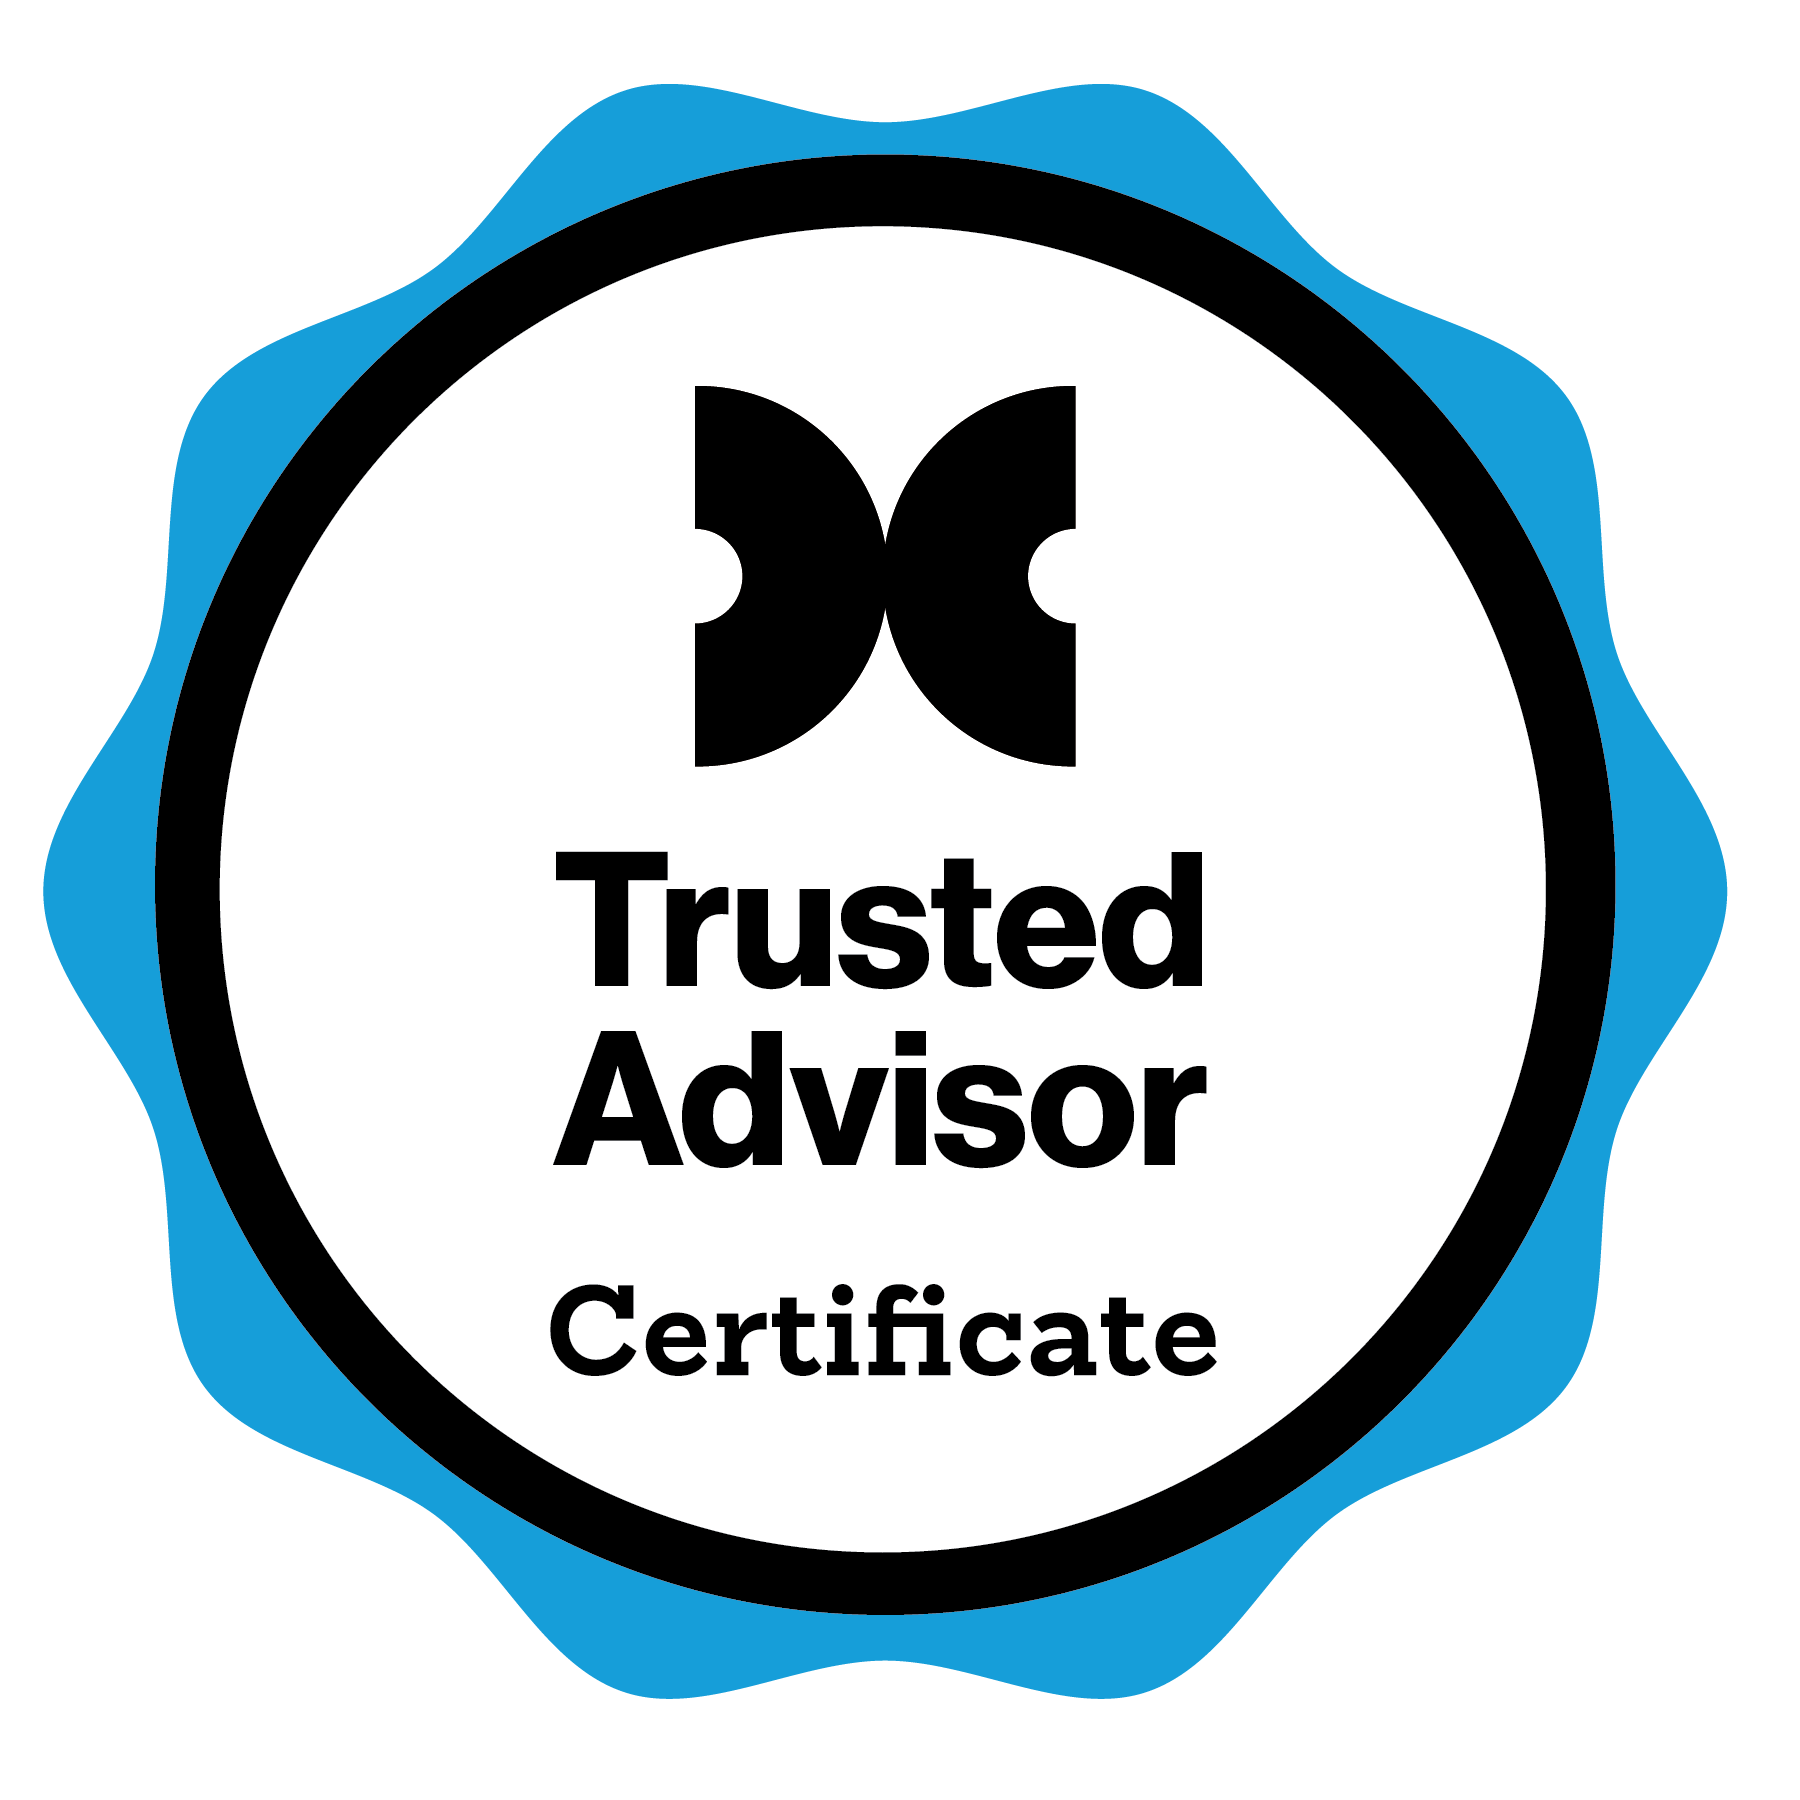 Trusted Advisor Certificate, Dale Carnegie of Singapore, Professional Training Courses